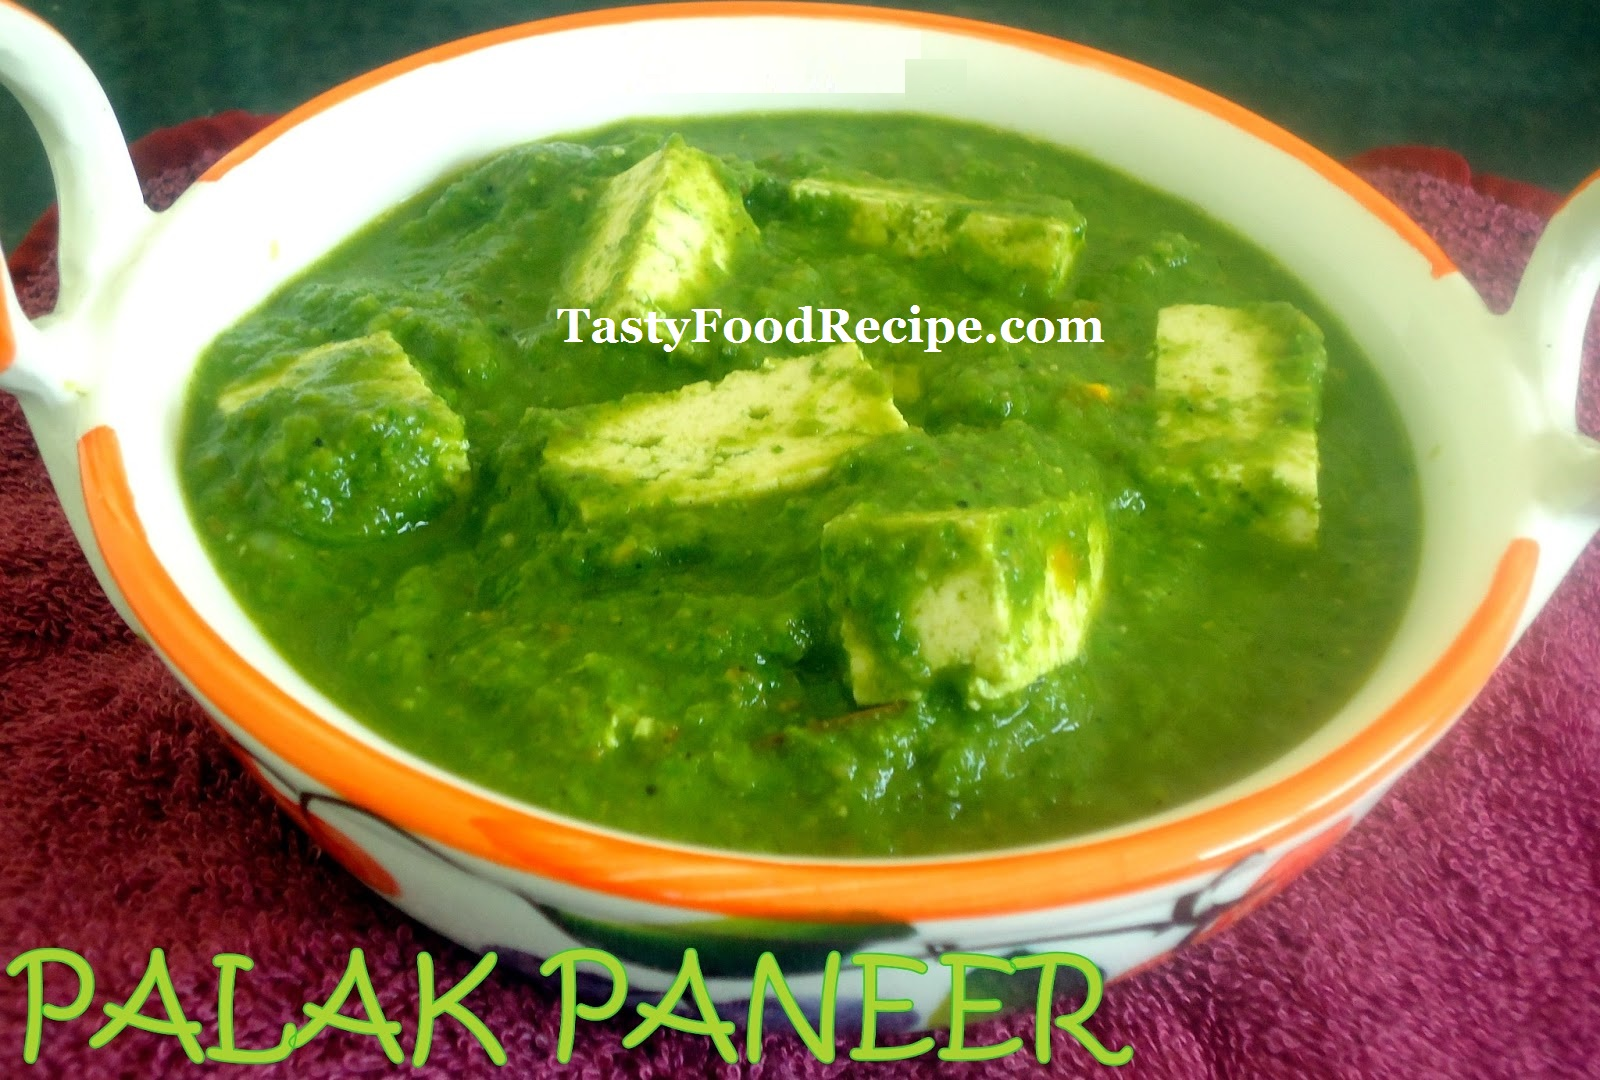 Palak paneer sabji recipes shahi palak paneer healthy life i always boiling palak very well and i never get the rich green colorthen i came to know palak shouldt over cook while watching master chef india and try forumfinder Images